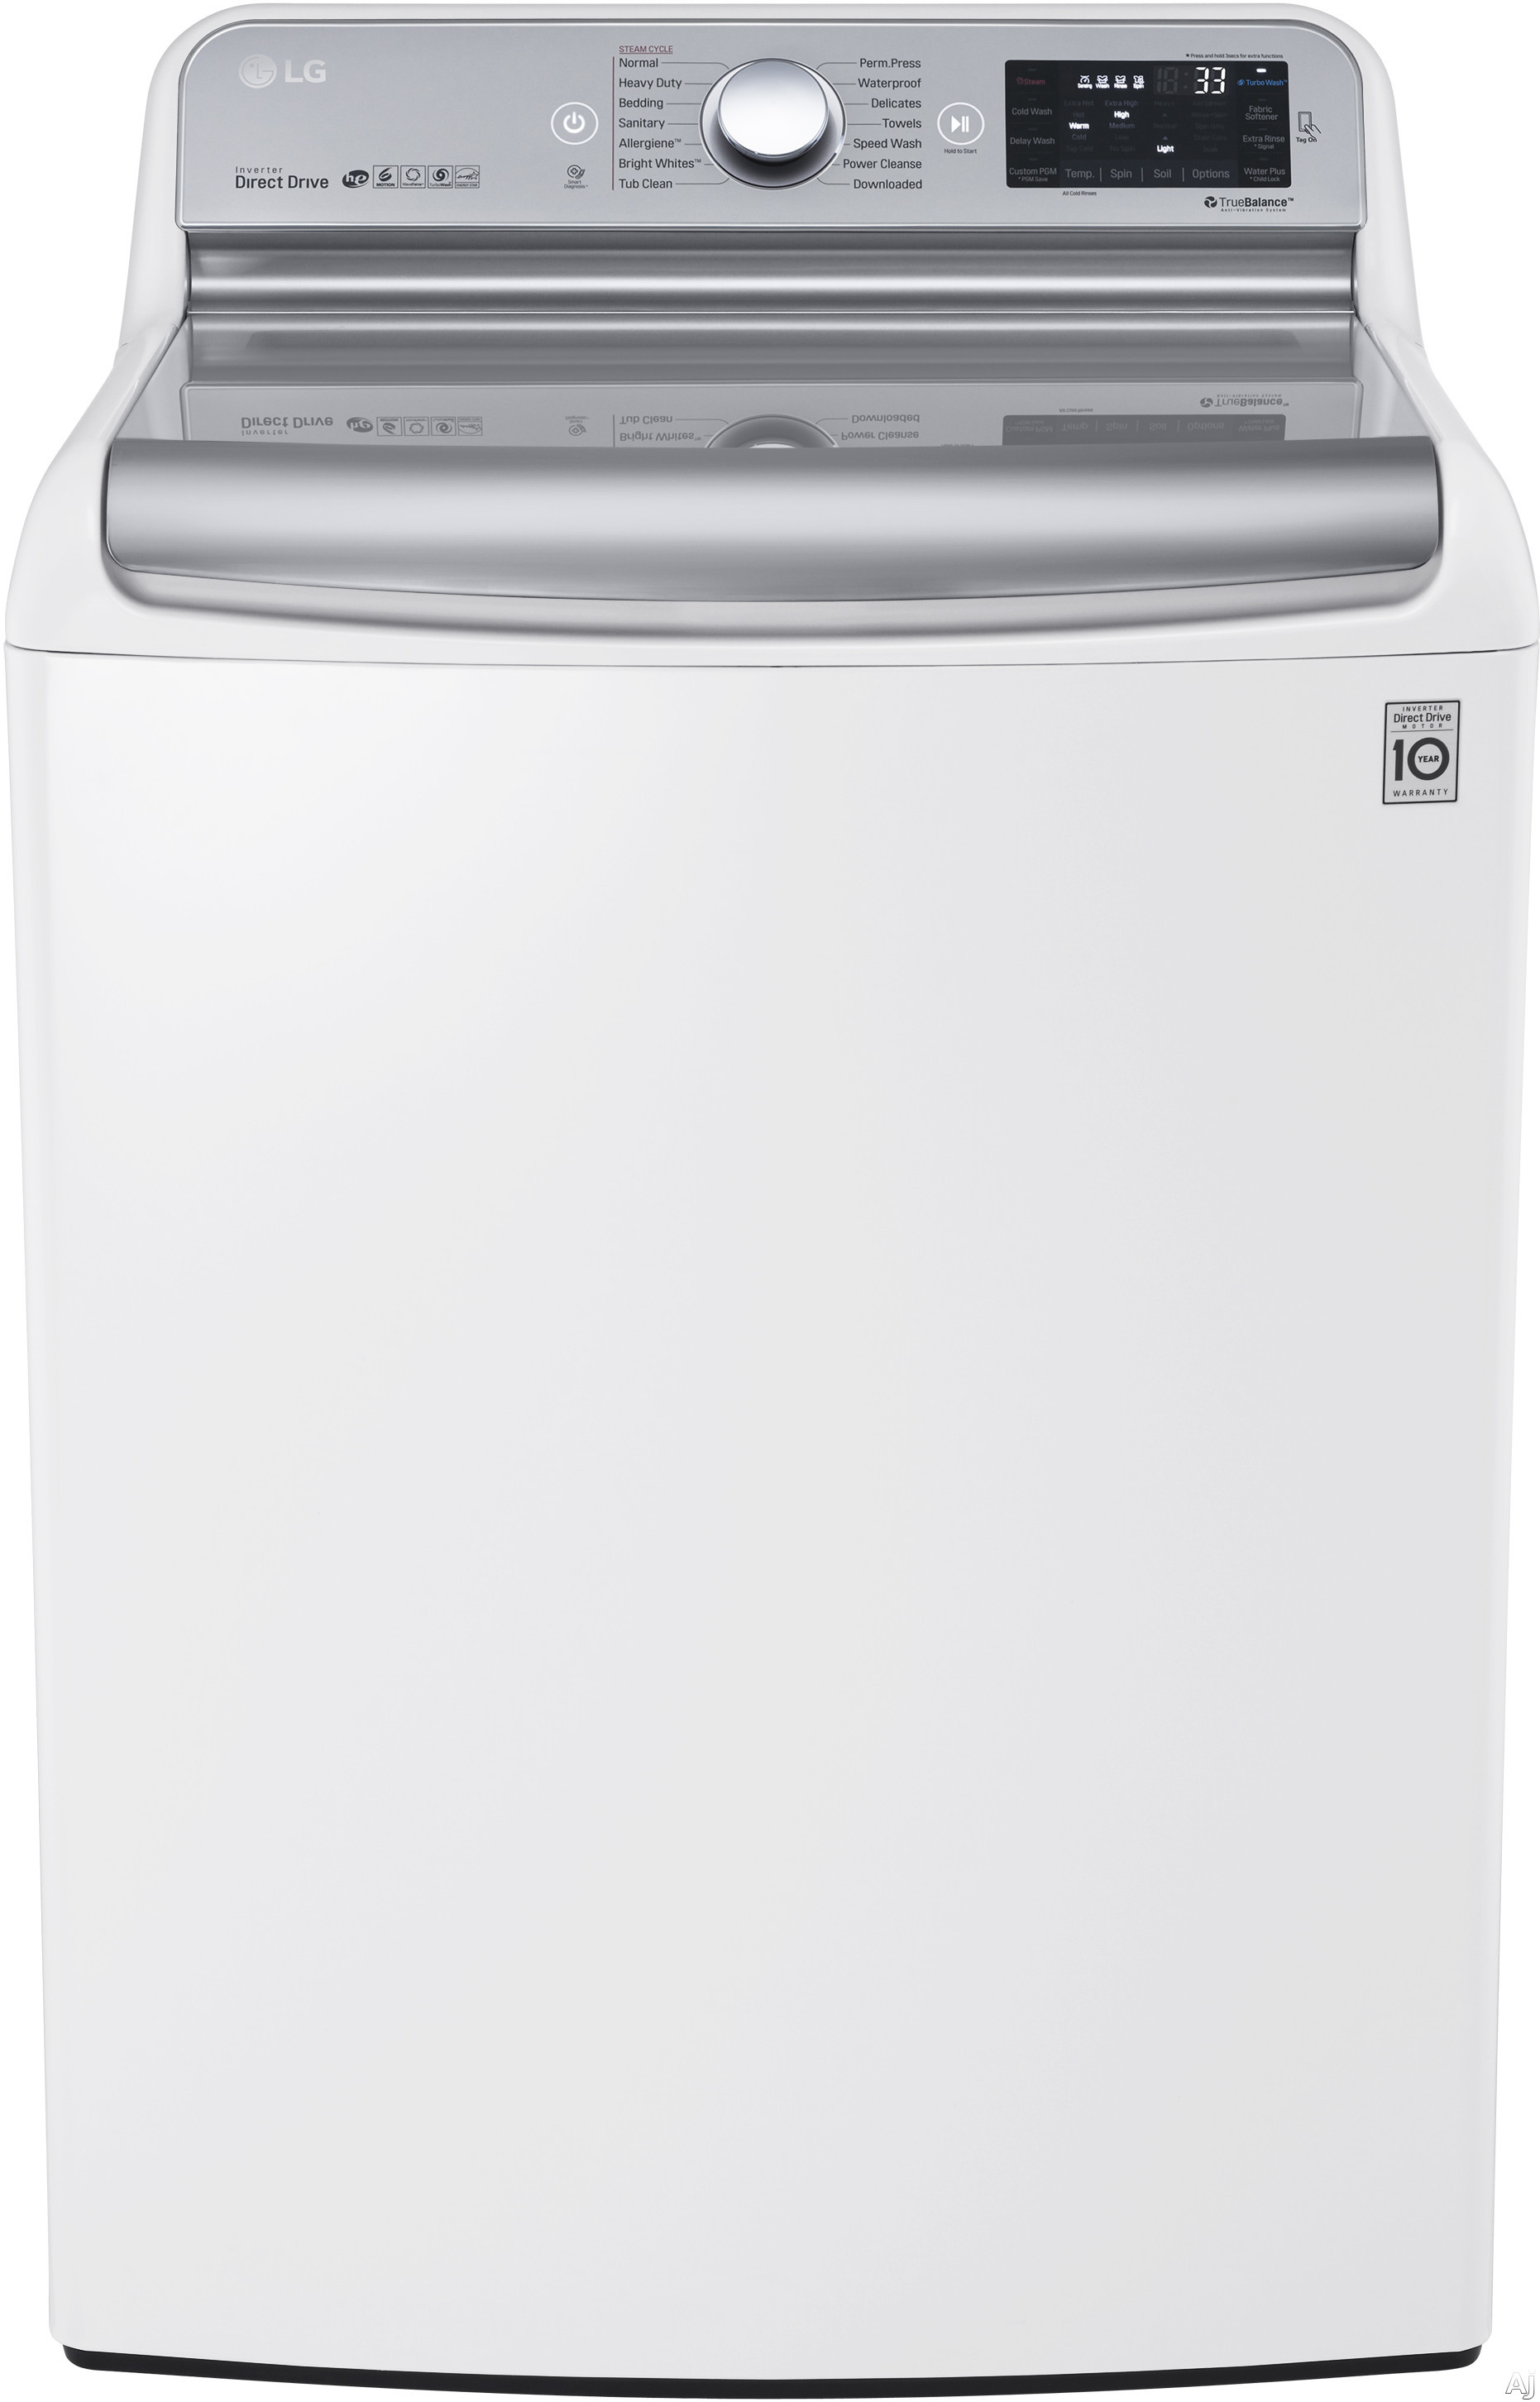 LG TurboWash Series WT7700HWA 29 Inch 5.7 cu. ft. Top Load Washer with 14 Wash Cycles, 1,050 RPM, Steam, TurboWash Technology, StainCare, Speed Wash, Allergiene Cycle, Sanitary Cycle, Smart Diagnosis and ENERGY STAR Qualification: White